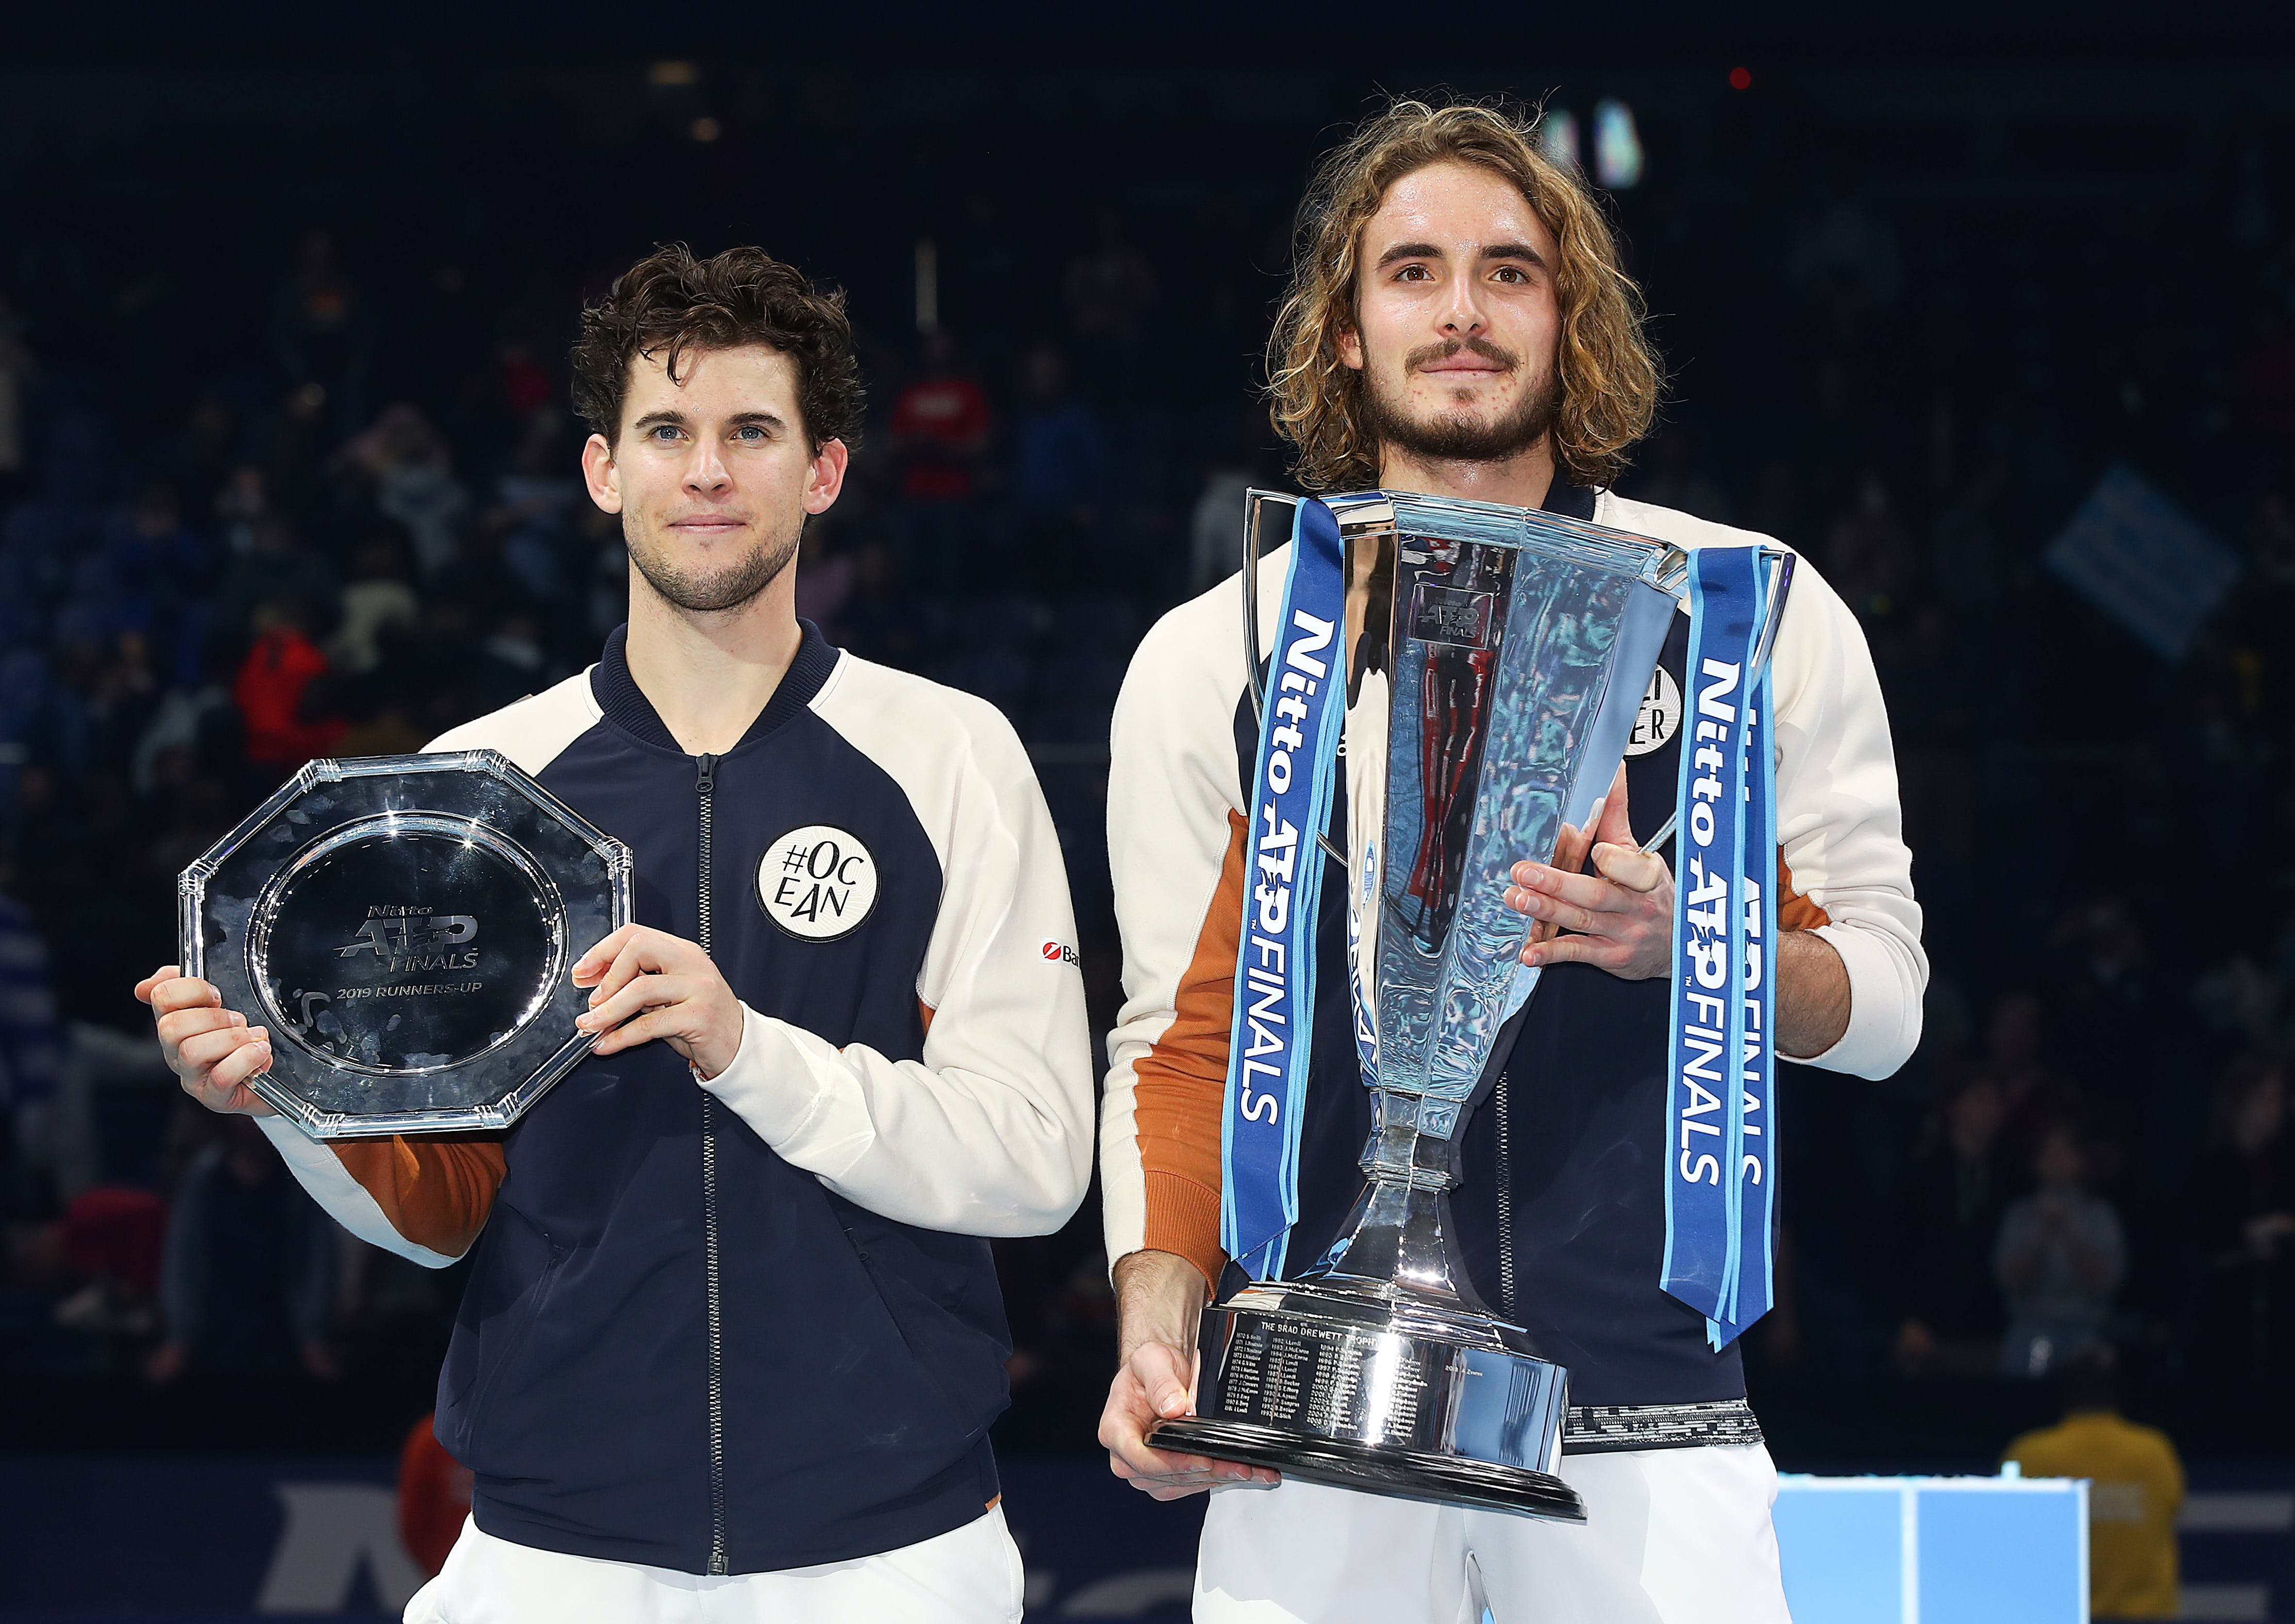 Stefanos Tsitsipas and Dominic Thiem posing with their trophies at the ATP Finals 2019